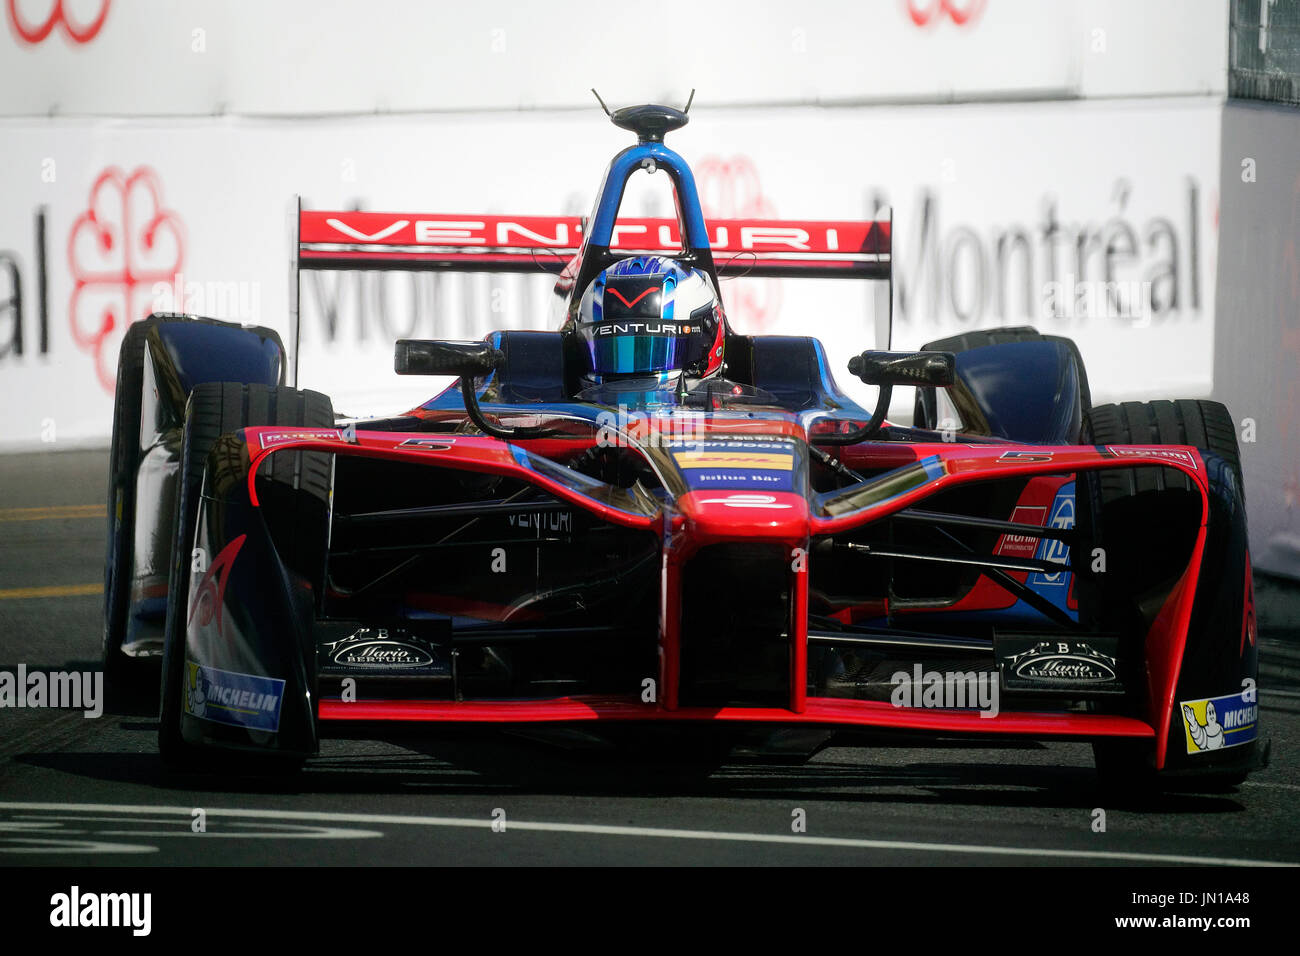 Montreal,Canada 28 July,2017. Formula E drivers trying out for the first time Montreal's urban race circuit through the city's downtown core.Credit:Mario Beauregard/Alamy Live News - Stock Image